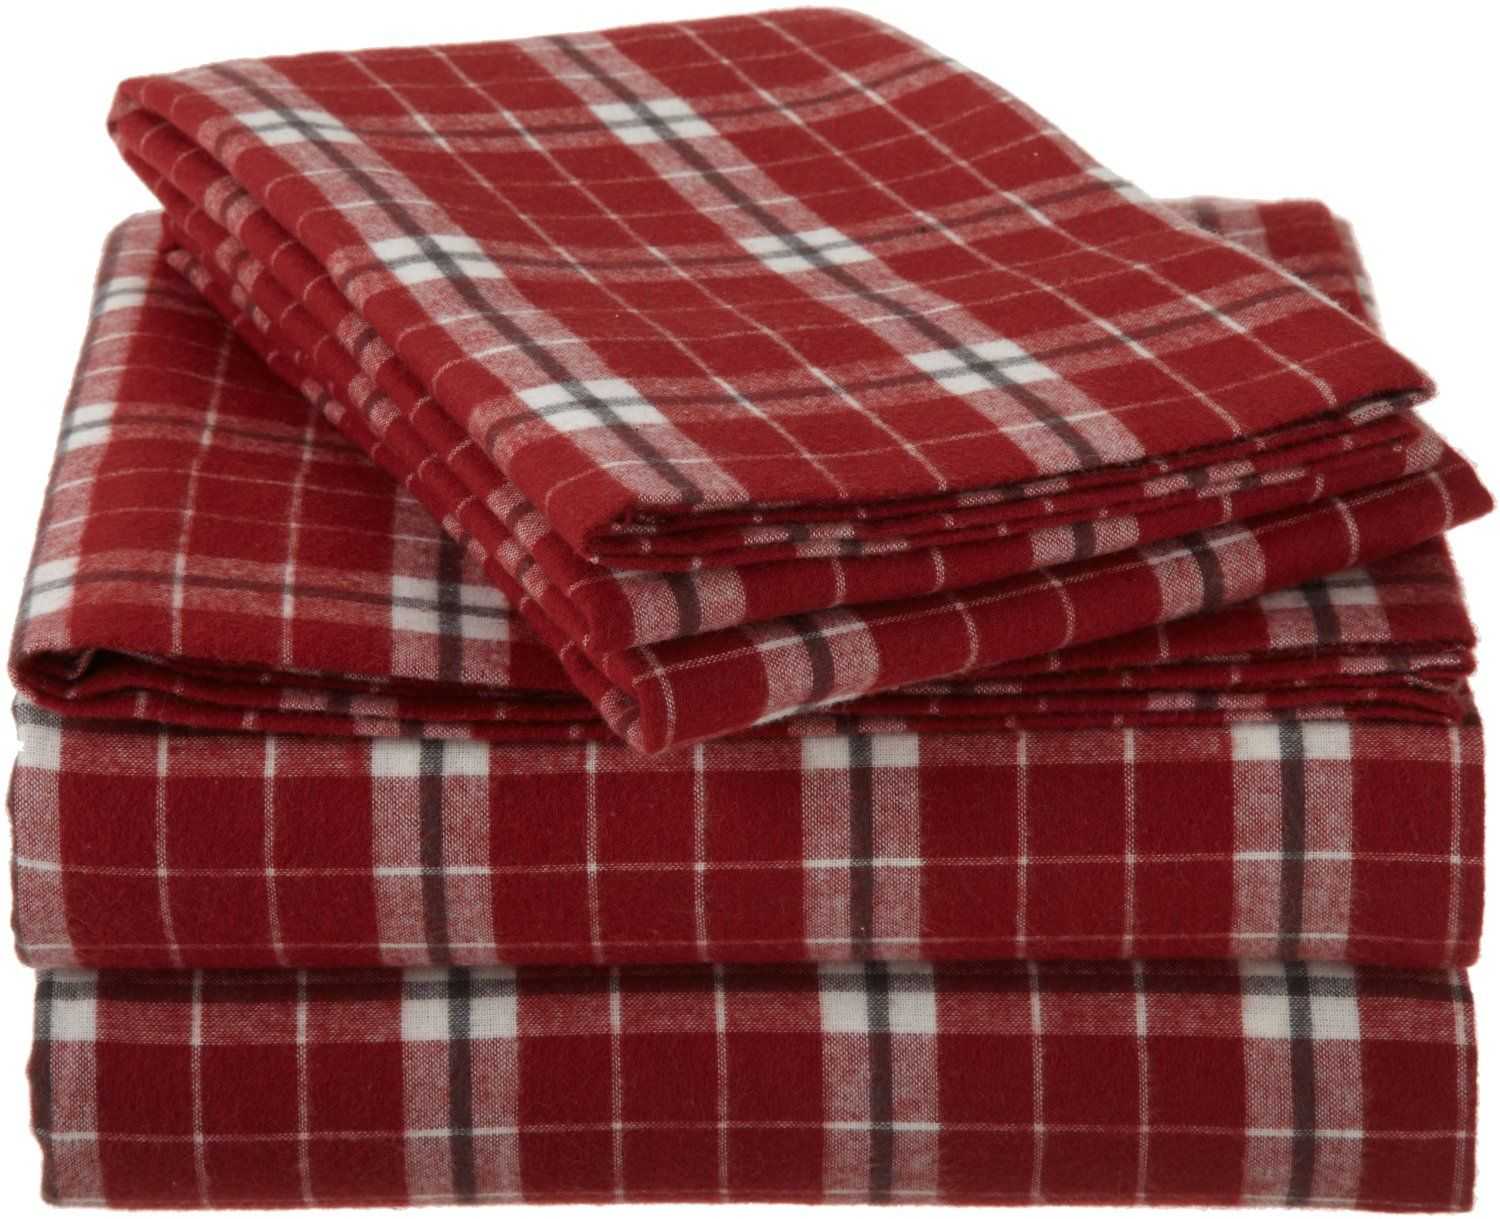 Bed Bath And Beyond Flannel Sheets Classy Amazon  Pinzon Lightweight Cotton Flannel Sheet Set  Queen